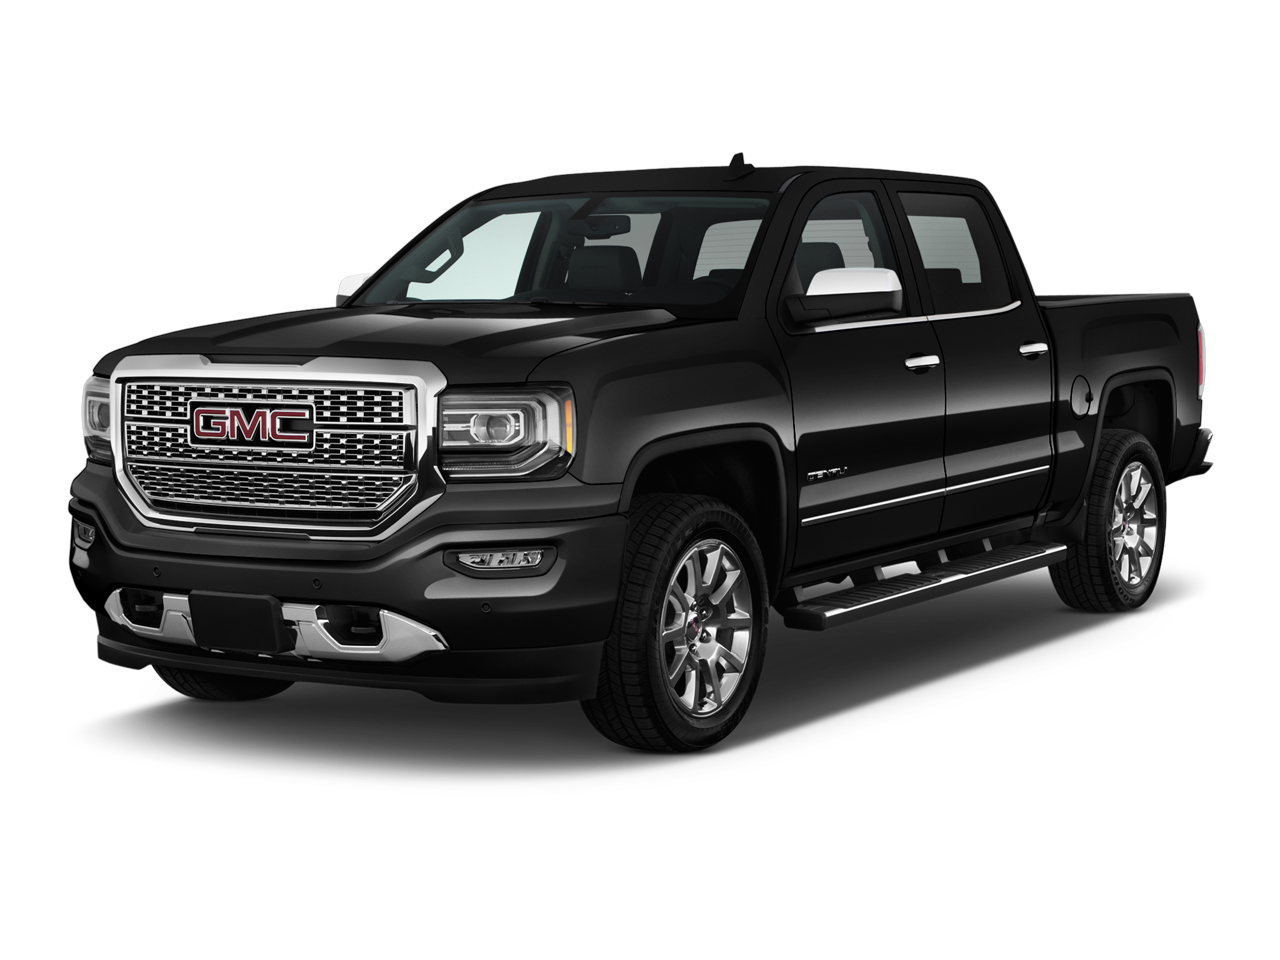 new sierra 1500 denali for sale randy wise auto. Black Bedroom Furniture Sets. Home Design Ideas